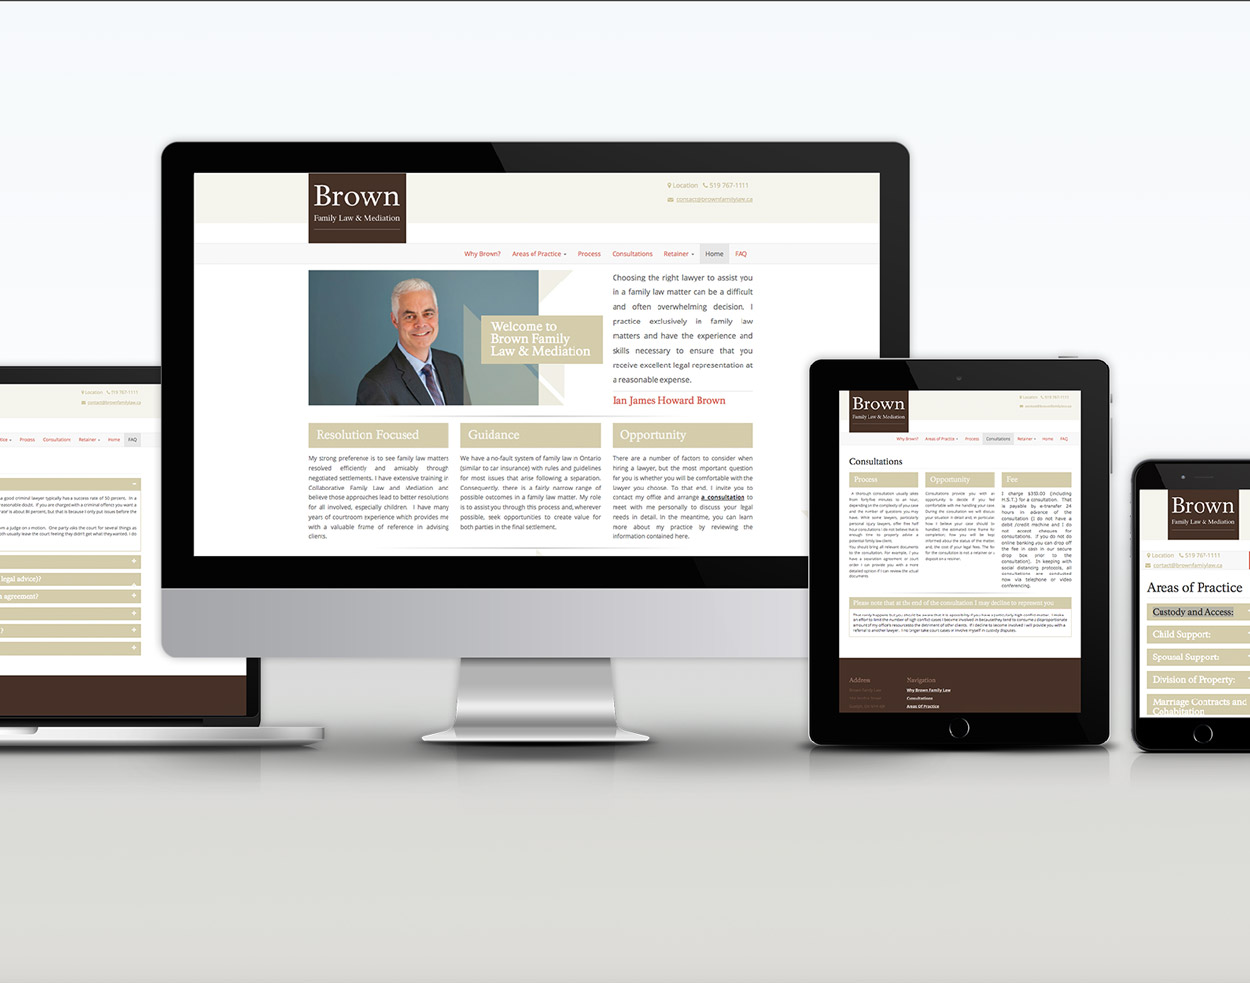 Brown Family Lawyer responsive design desktop Black bike media web design portfolio cover